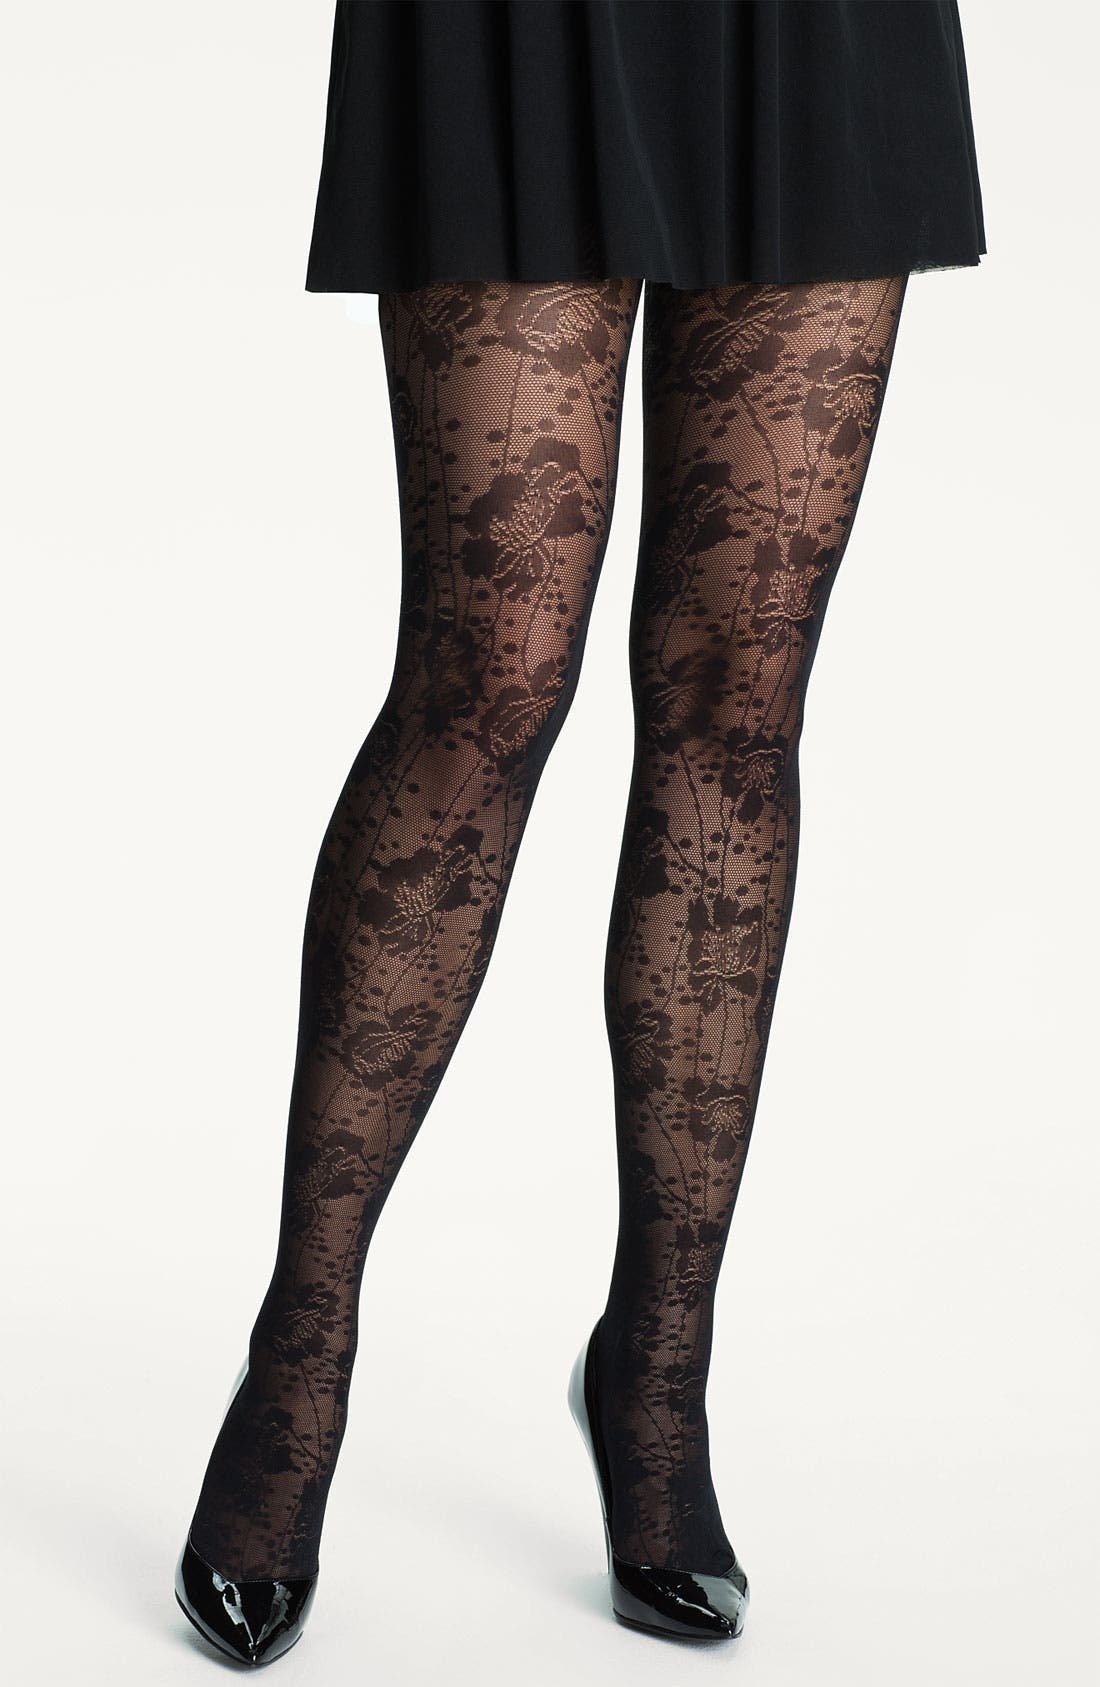 Alternate Image 1 Selected - kate spade new york spotted floral lace tights